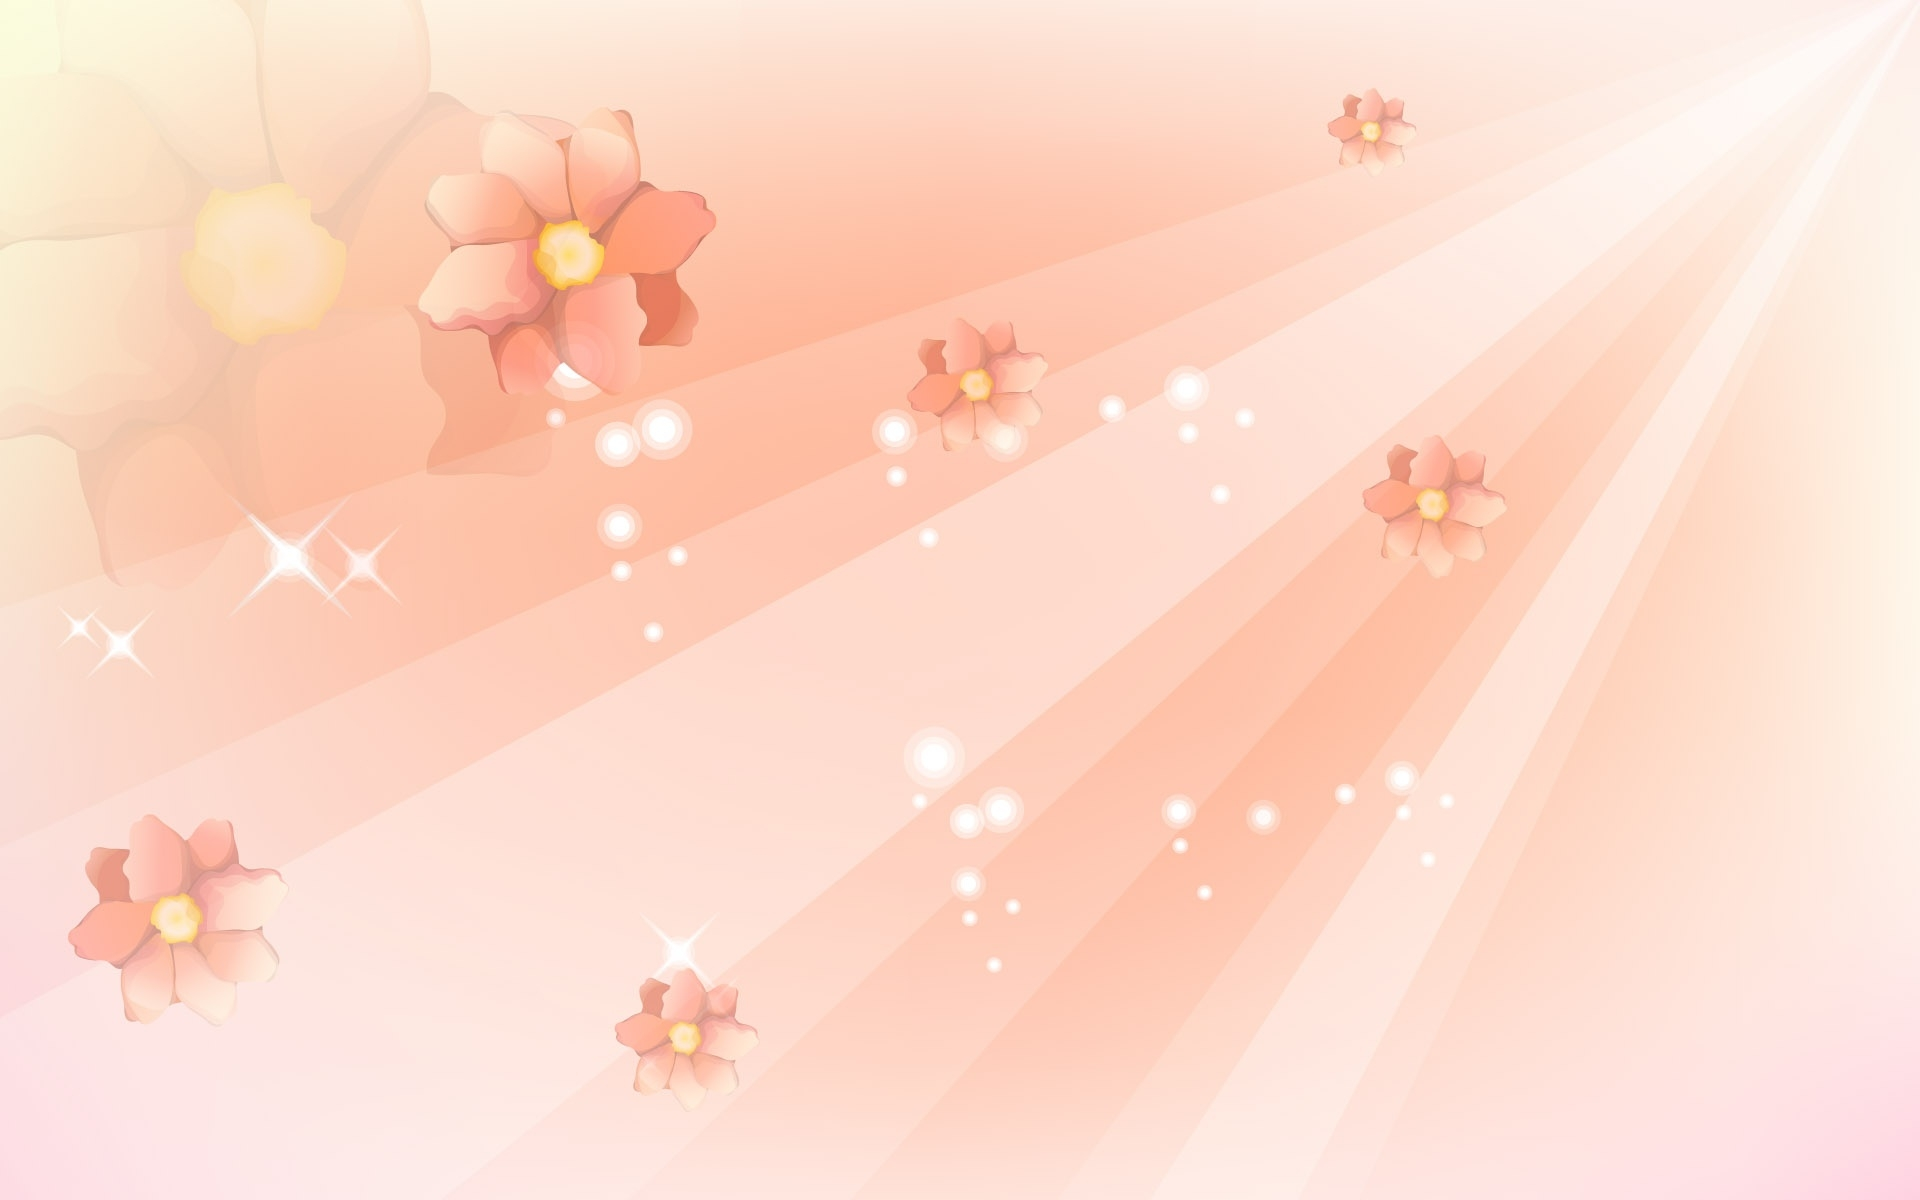 Bright Pink Flowers Background Wallpaper 1920x1200 22664